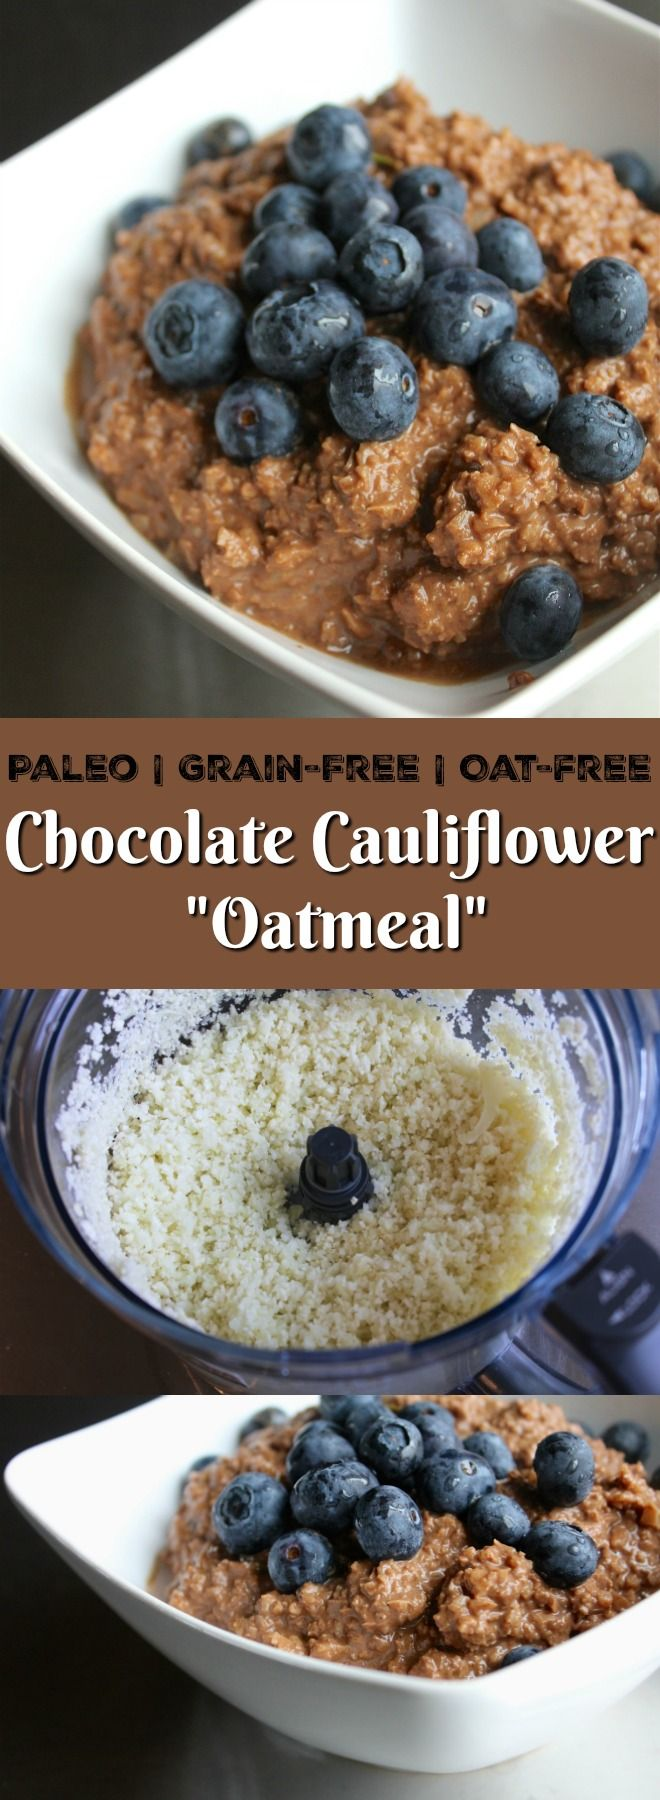 24 cauliflower recipes breakfast